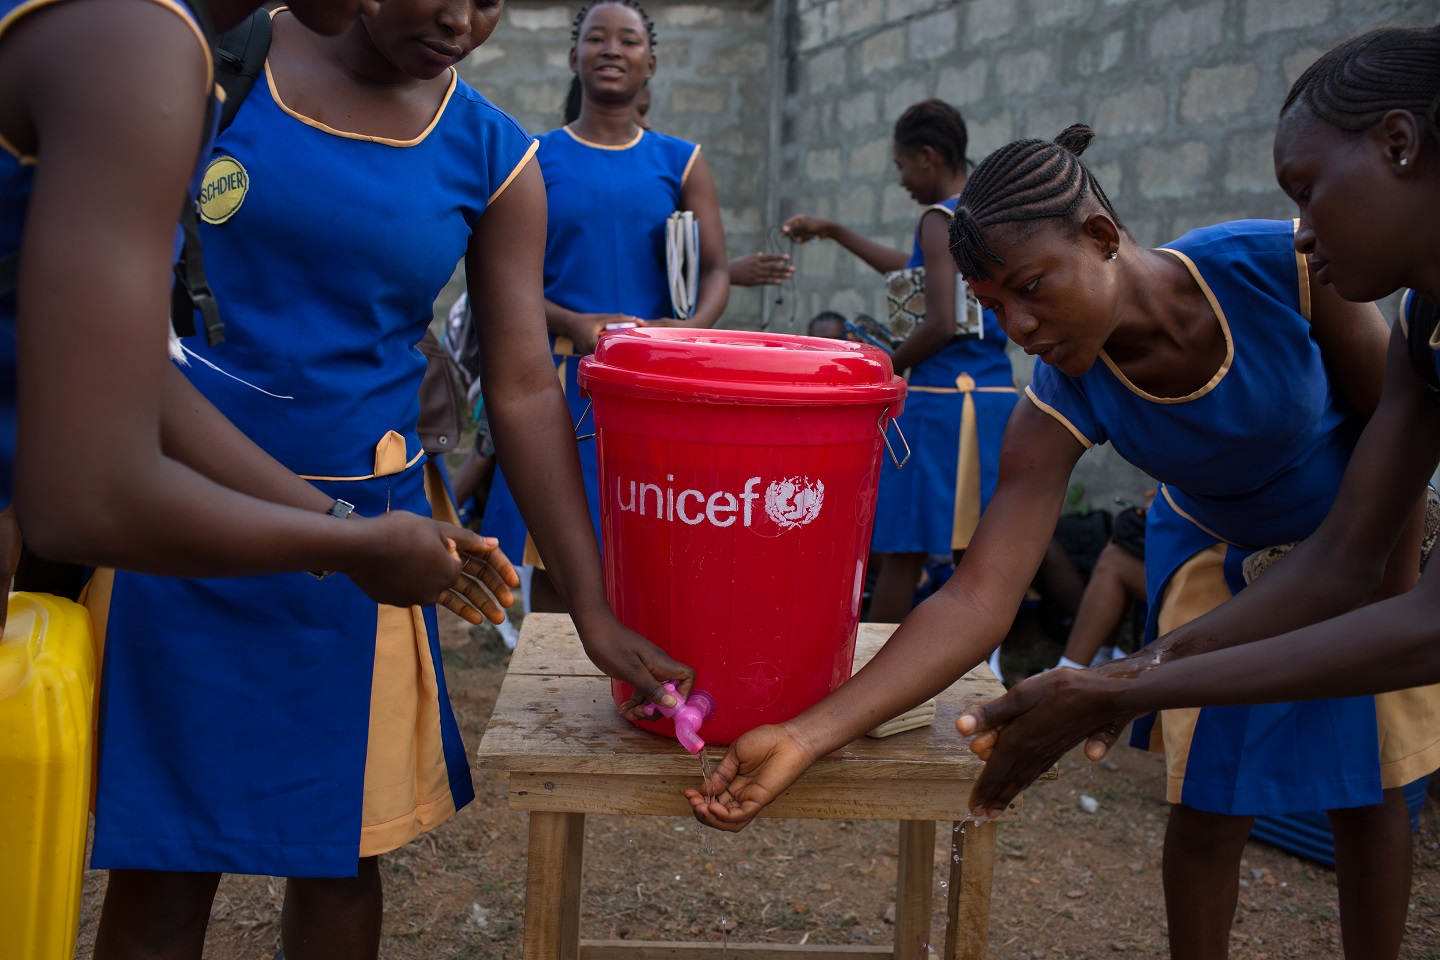 As part of Ebola protocols, all children and staff wash their hands when entering school. (c) UNICEF 2015 / Bindra